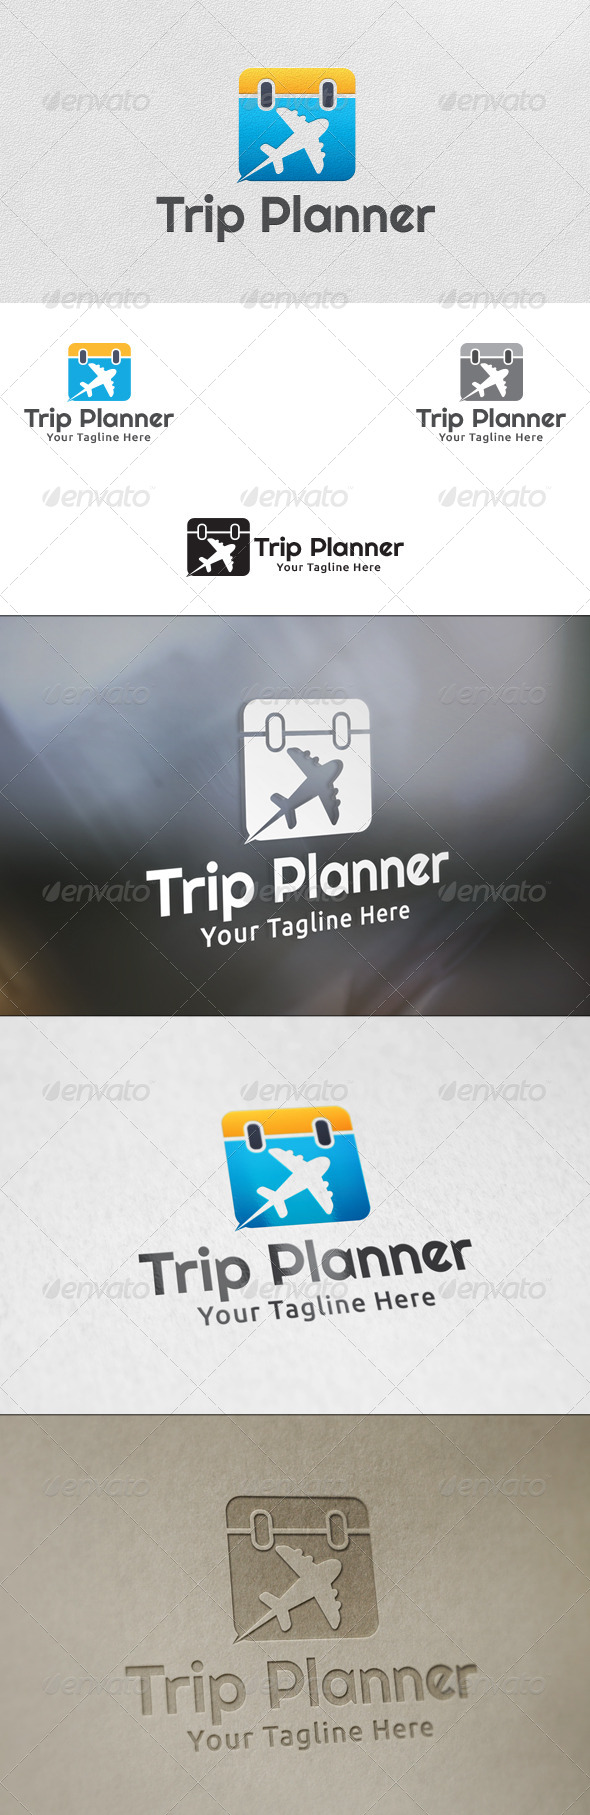 GraphicRiver Trip Planner Logo Template 5991332